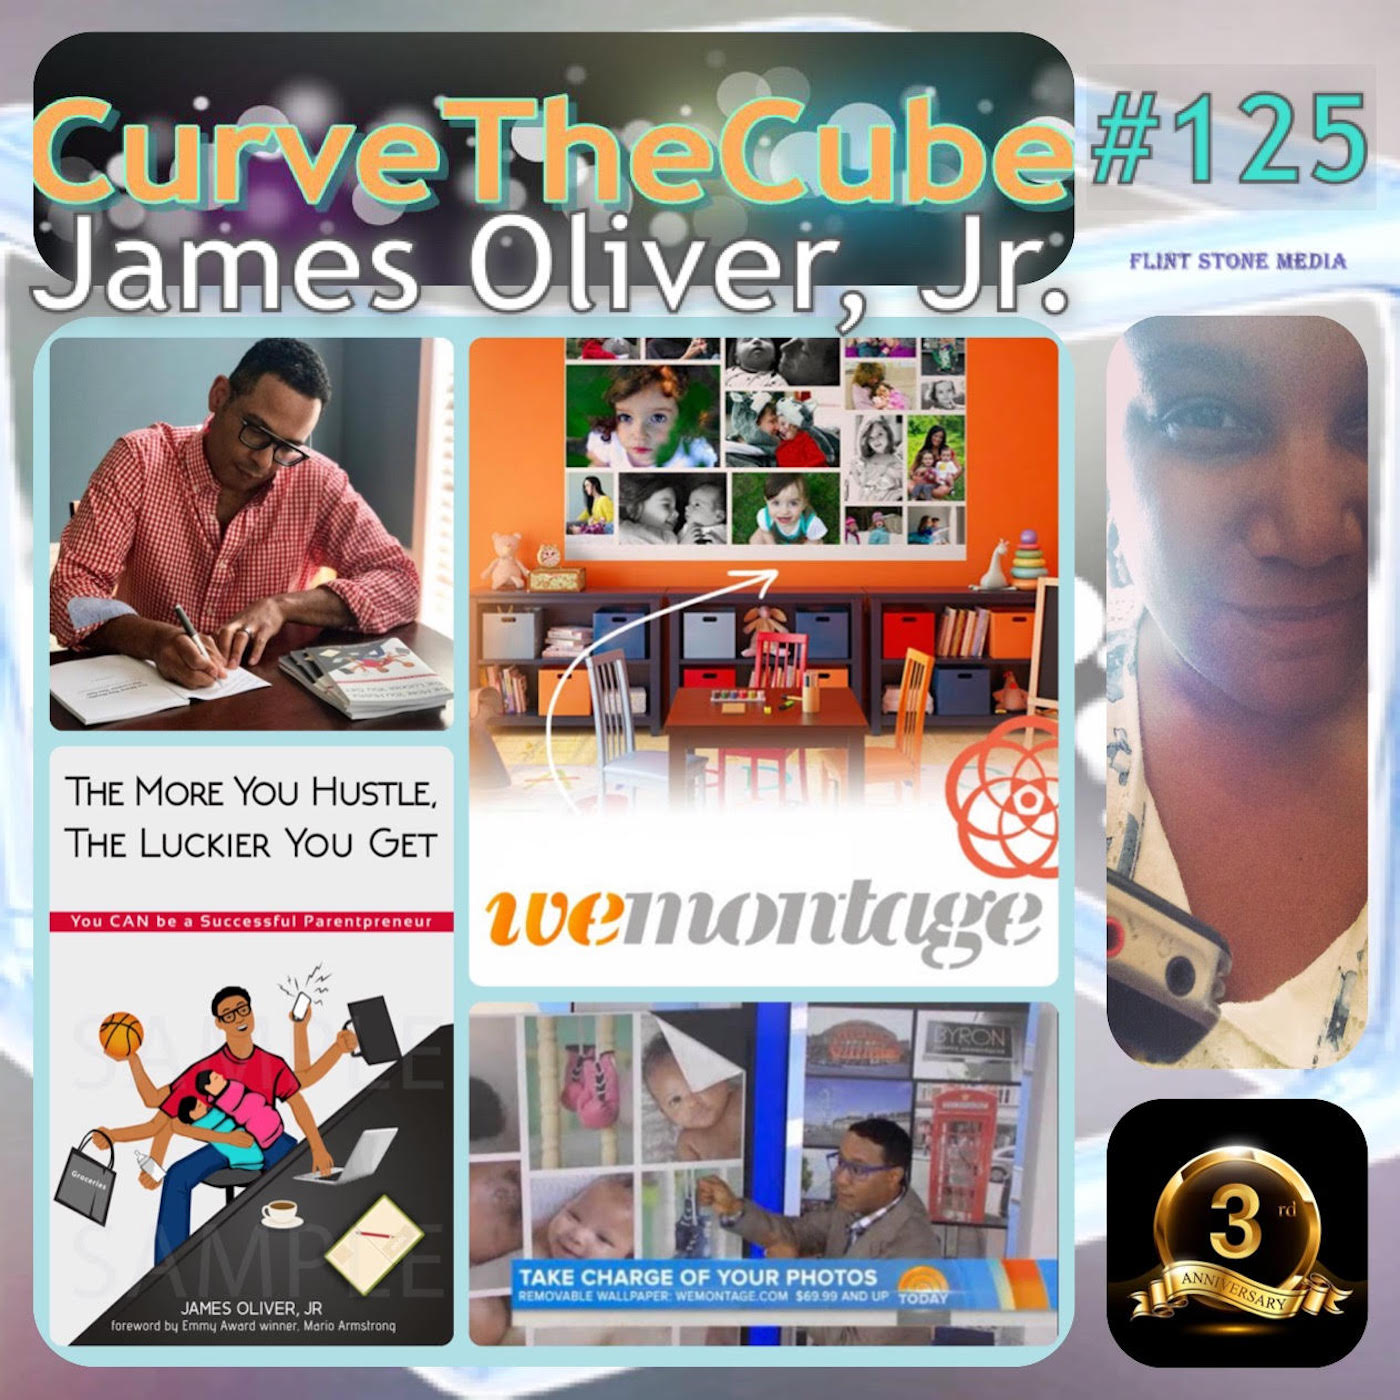 Author and Entrepreneur James Oliver, Jr. on the Curve the Cube Podcast